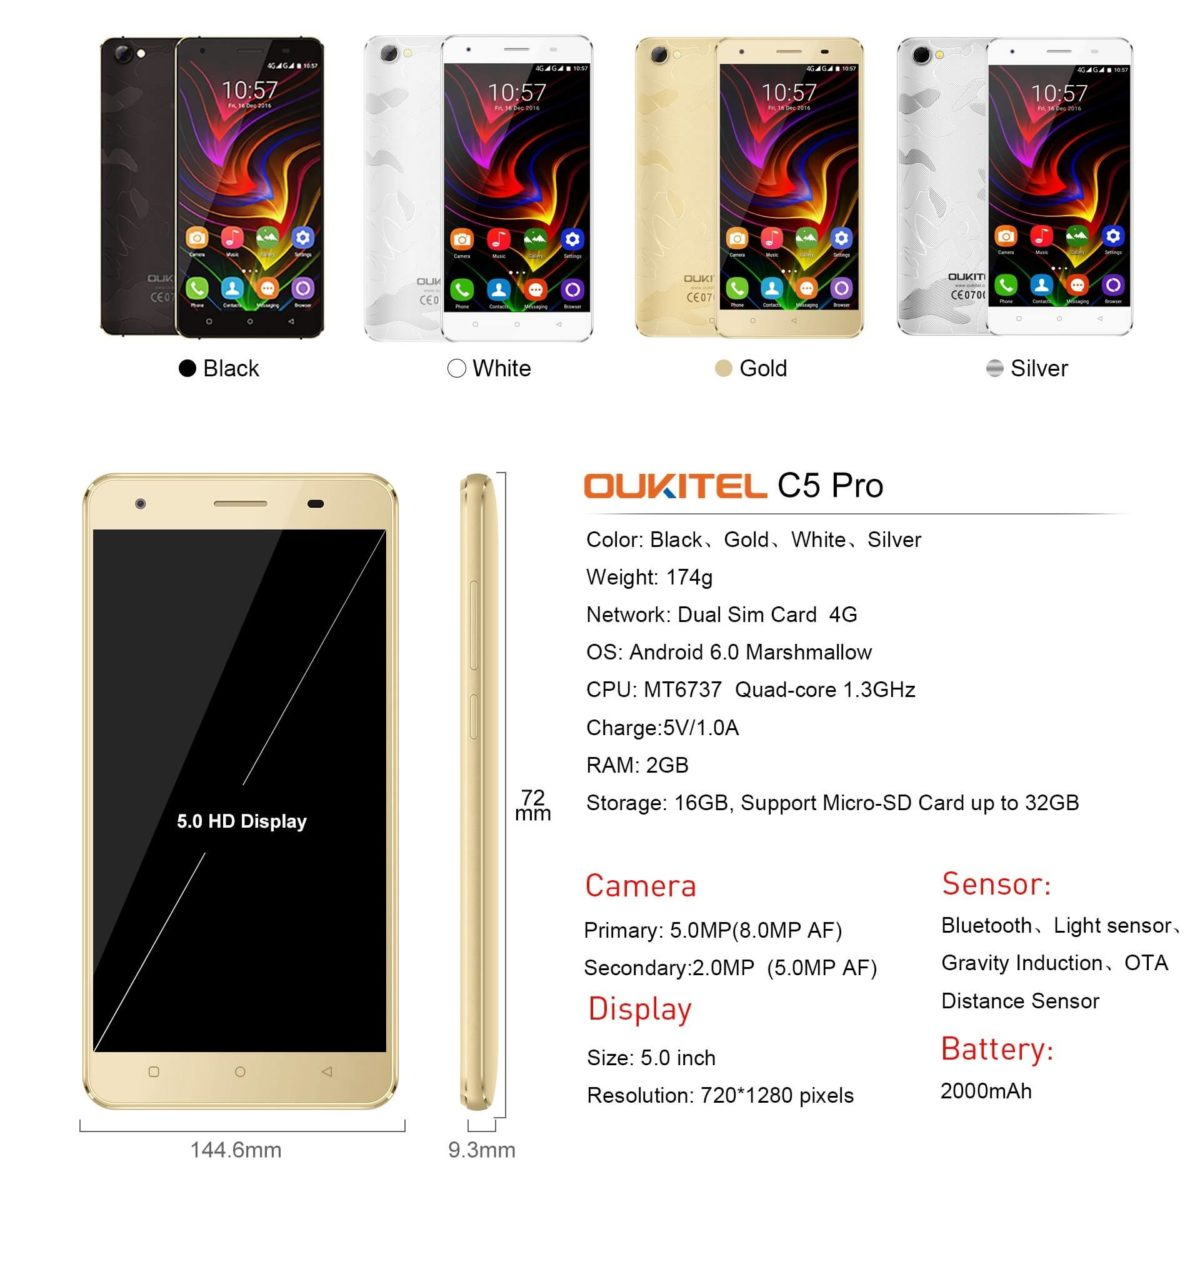 OUKITEL C5 Pro full Specifications and will be priced under $75